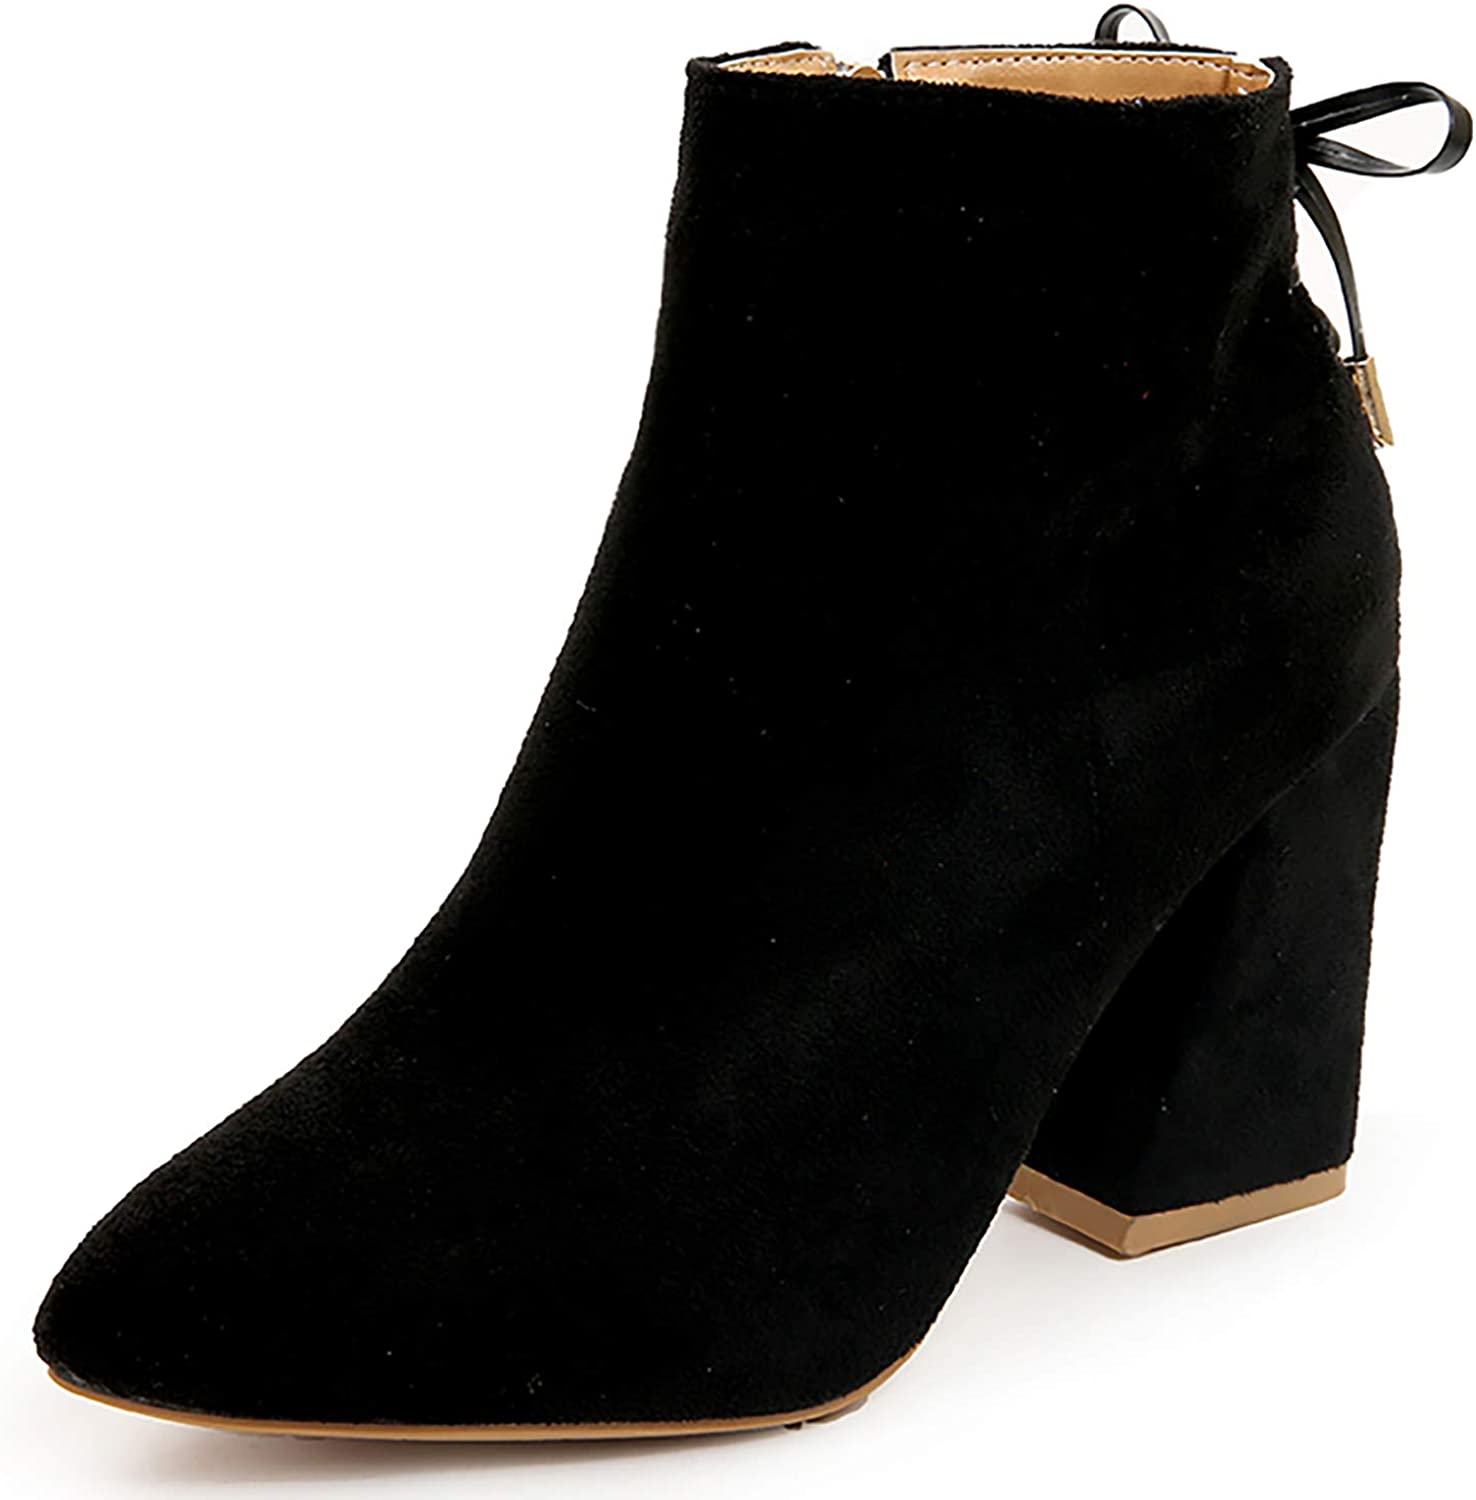 HEETIST Women's Casual Lace Up Round Toe Ankle Boots with Chunky Block Heel Fashion Booties